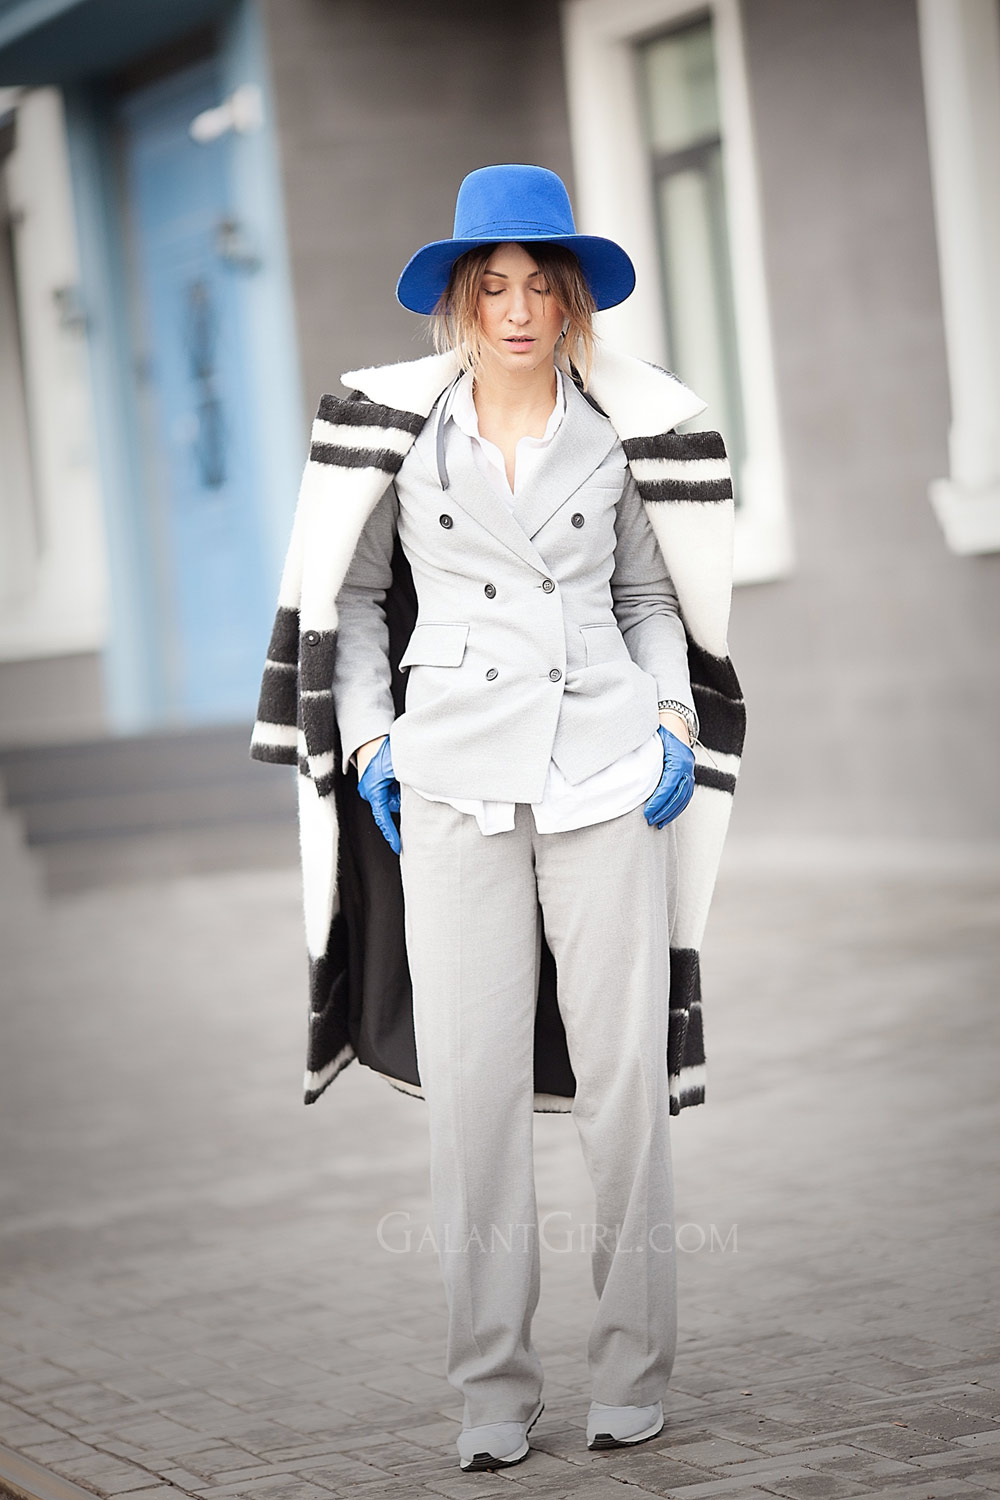 suits-for-women-street-style-by-ellena-galant